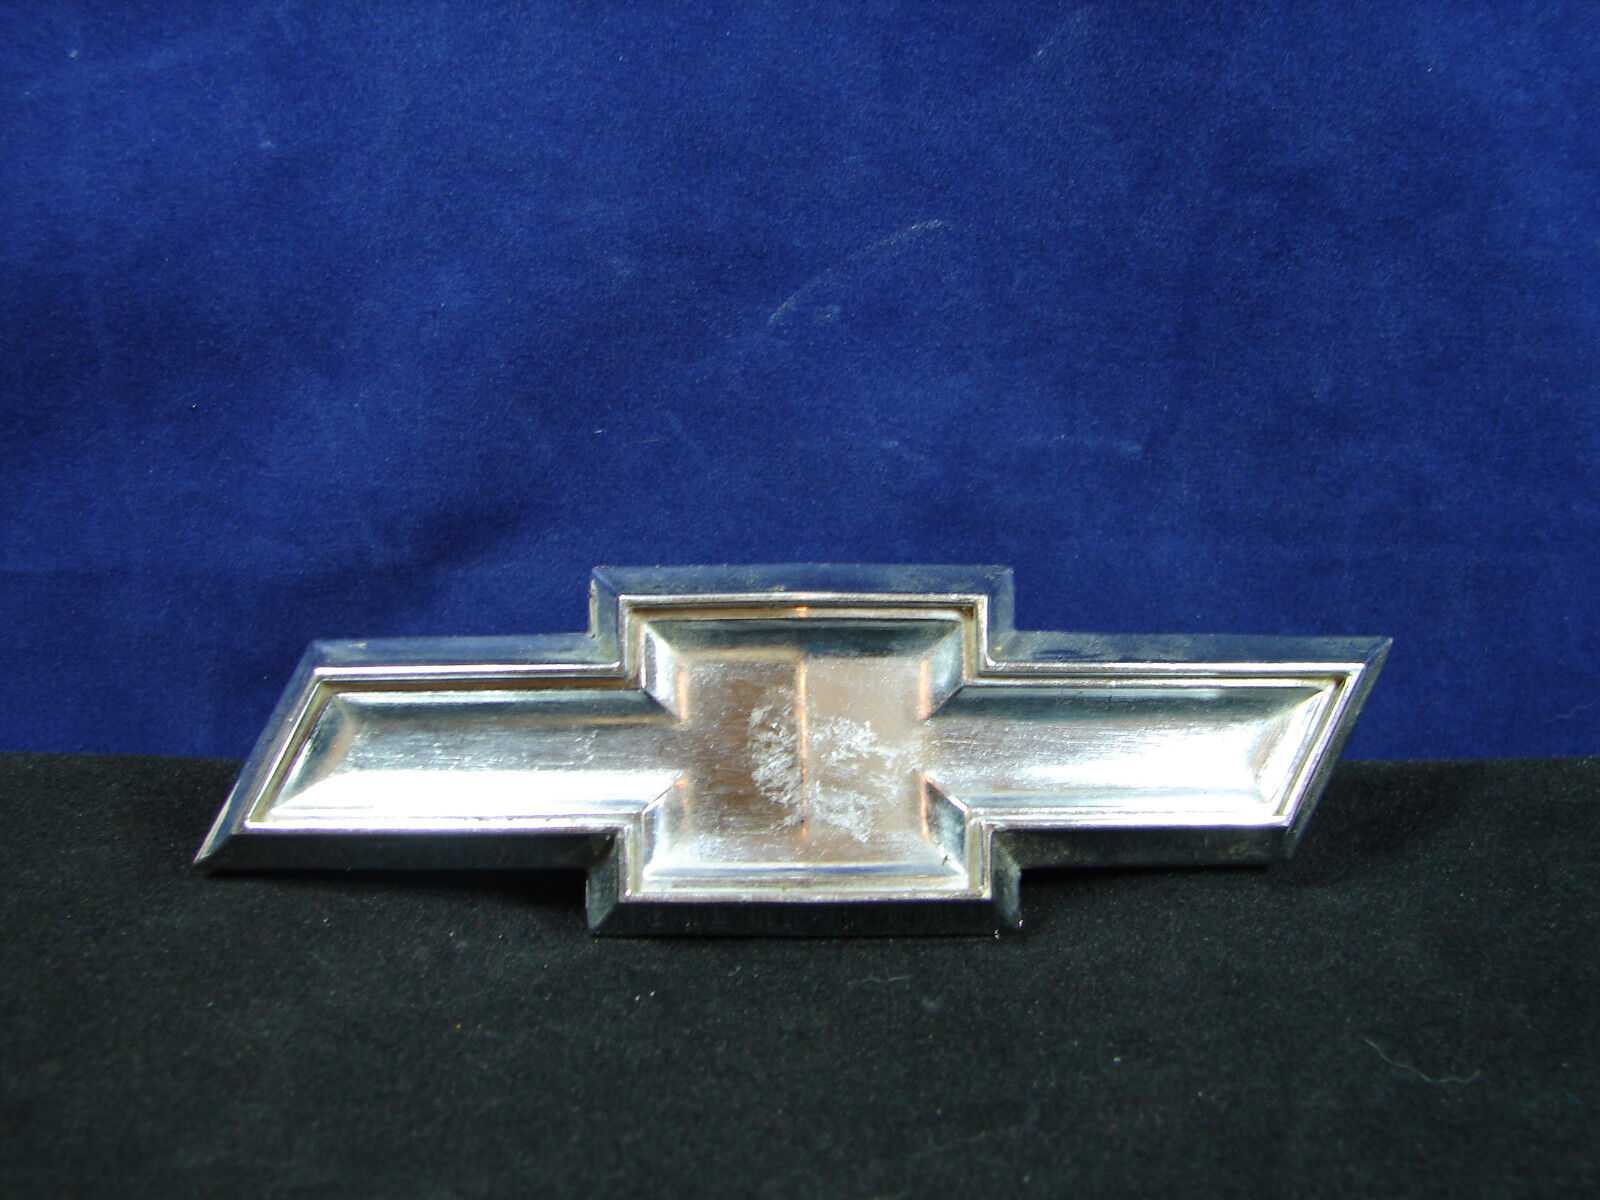 Used chevrolet emblems for sale page 20 chevrolet grille emblem silver metal rare auto buycottarizona Images